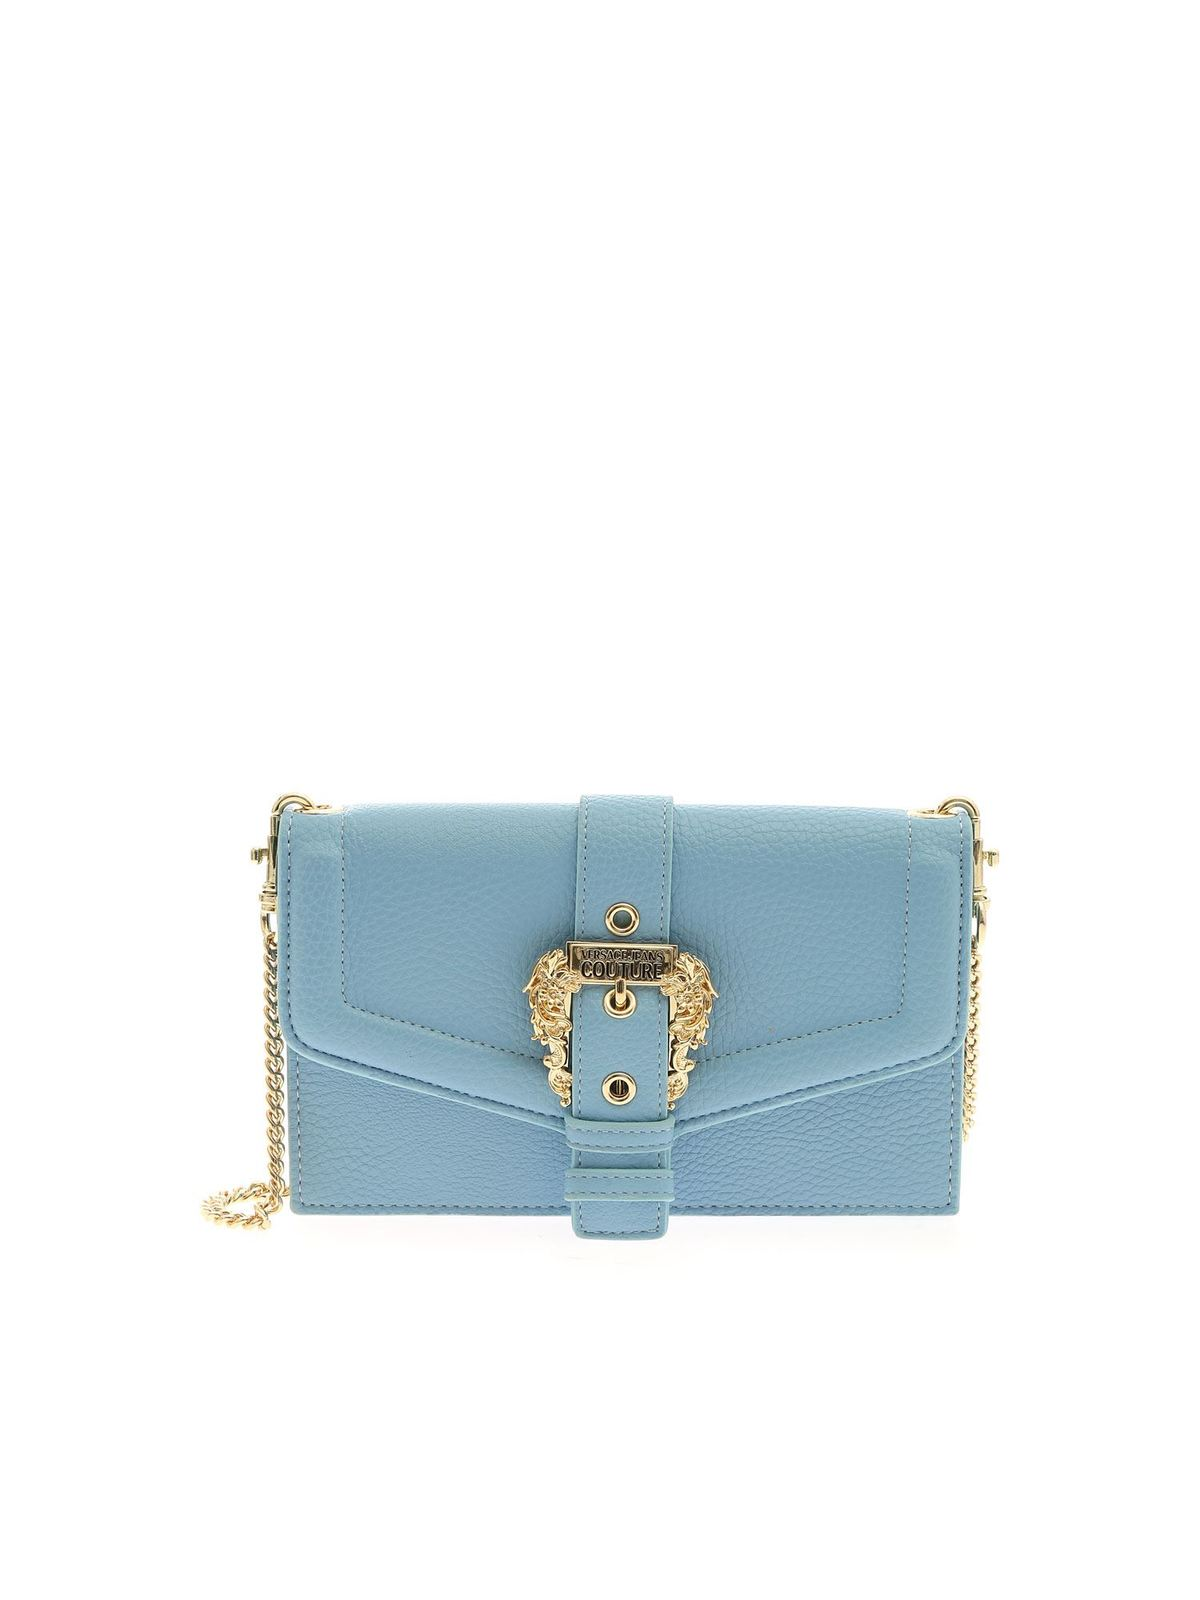 Versace Jeans Couture Wallets BAROQUE BUCKLE WALLET IN LIGHT BLUE